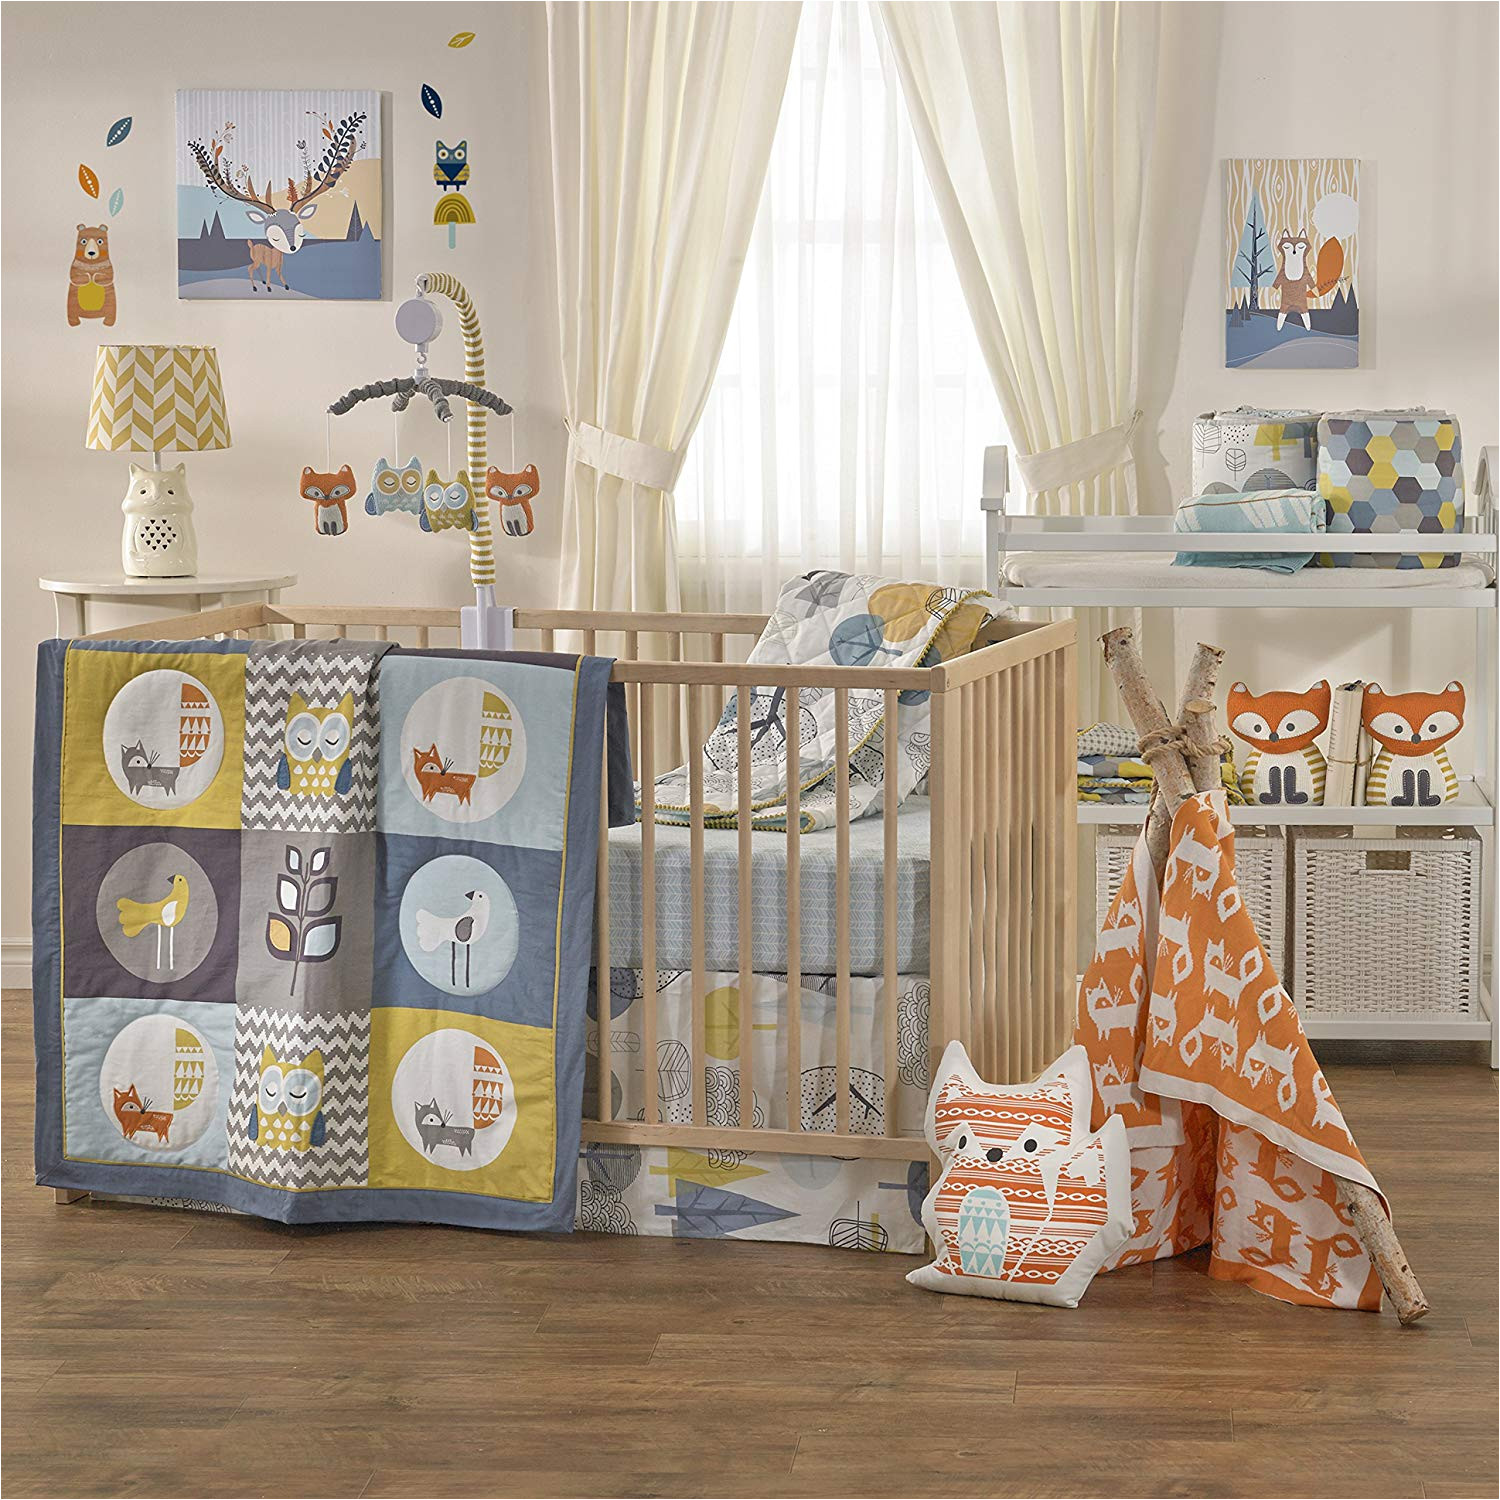 crib bedding set baby living woods wildlife rustic boy girl nursery animal new